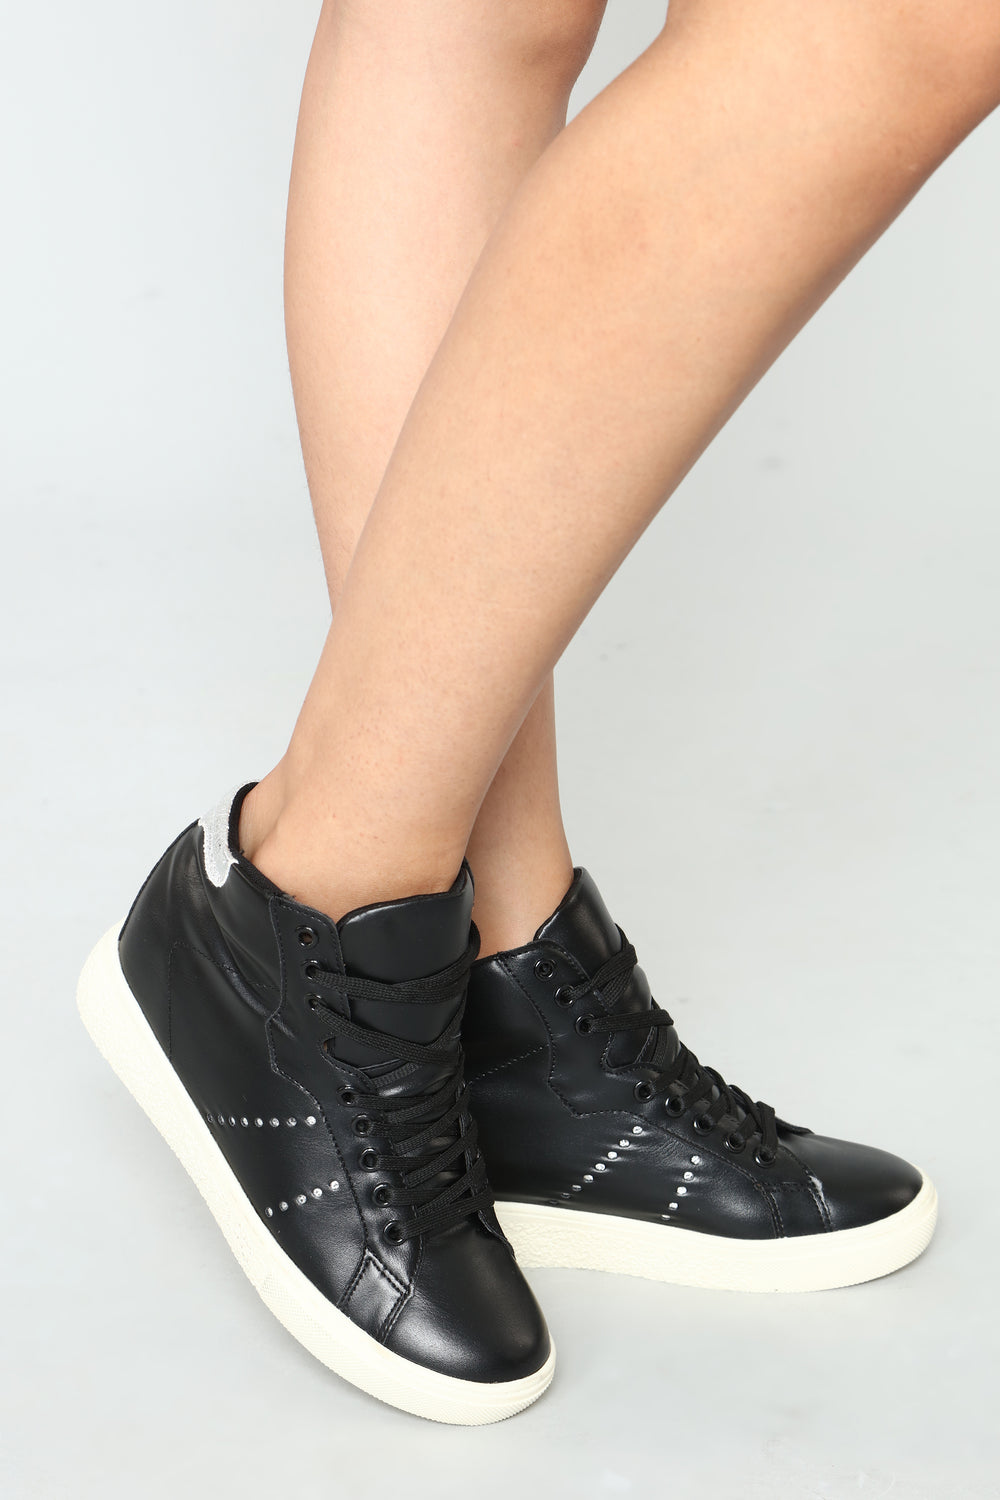 The Sky Is The Limit Sneaker - Black